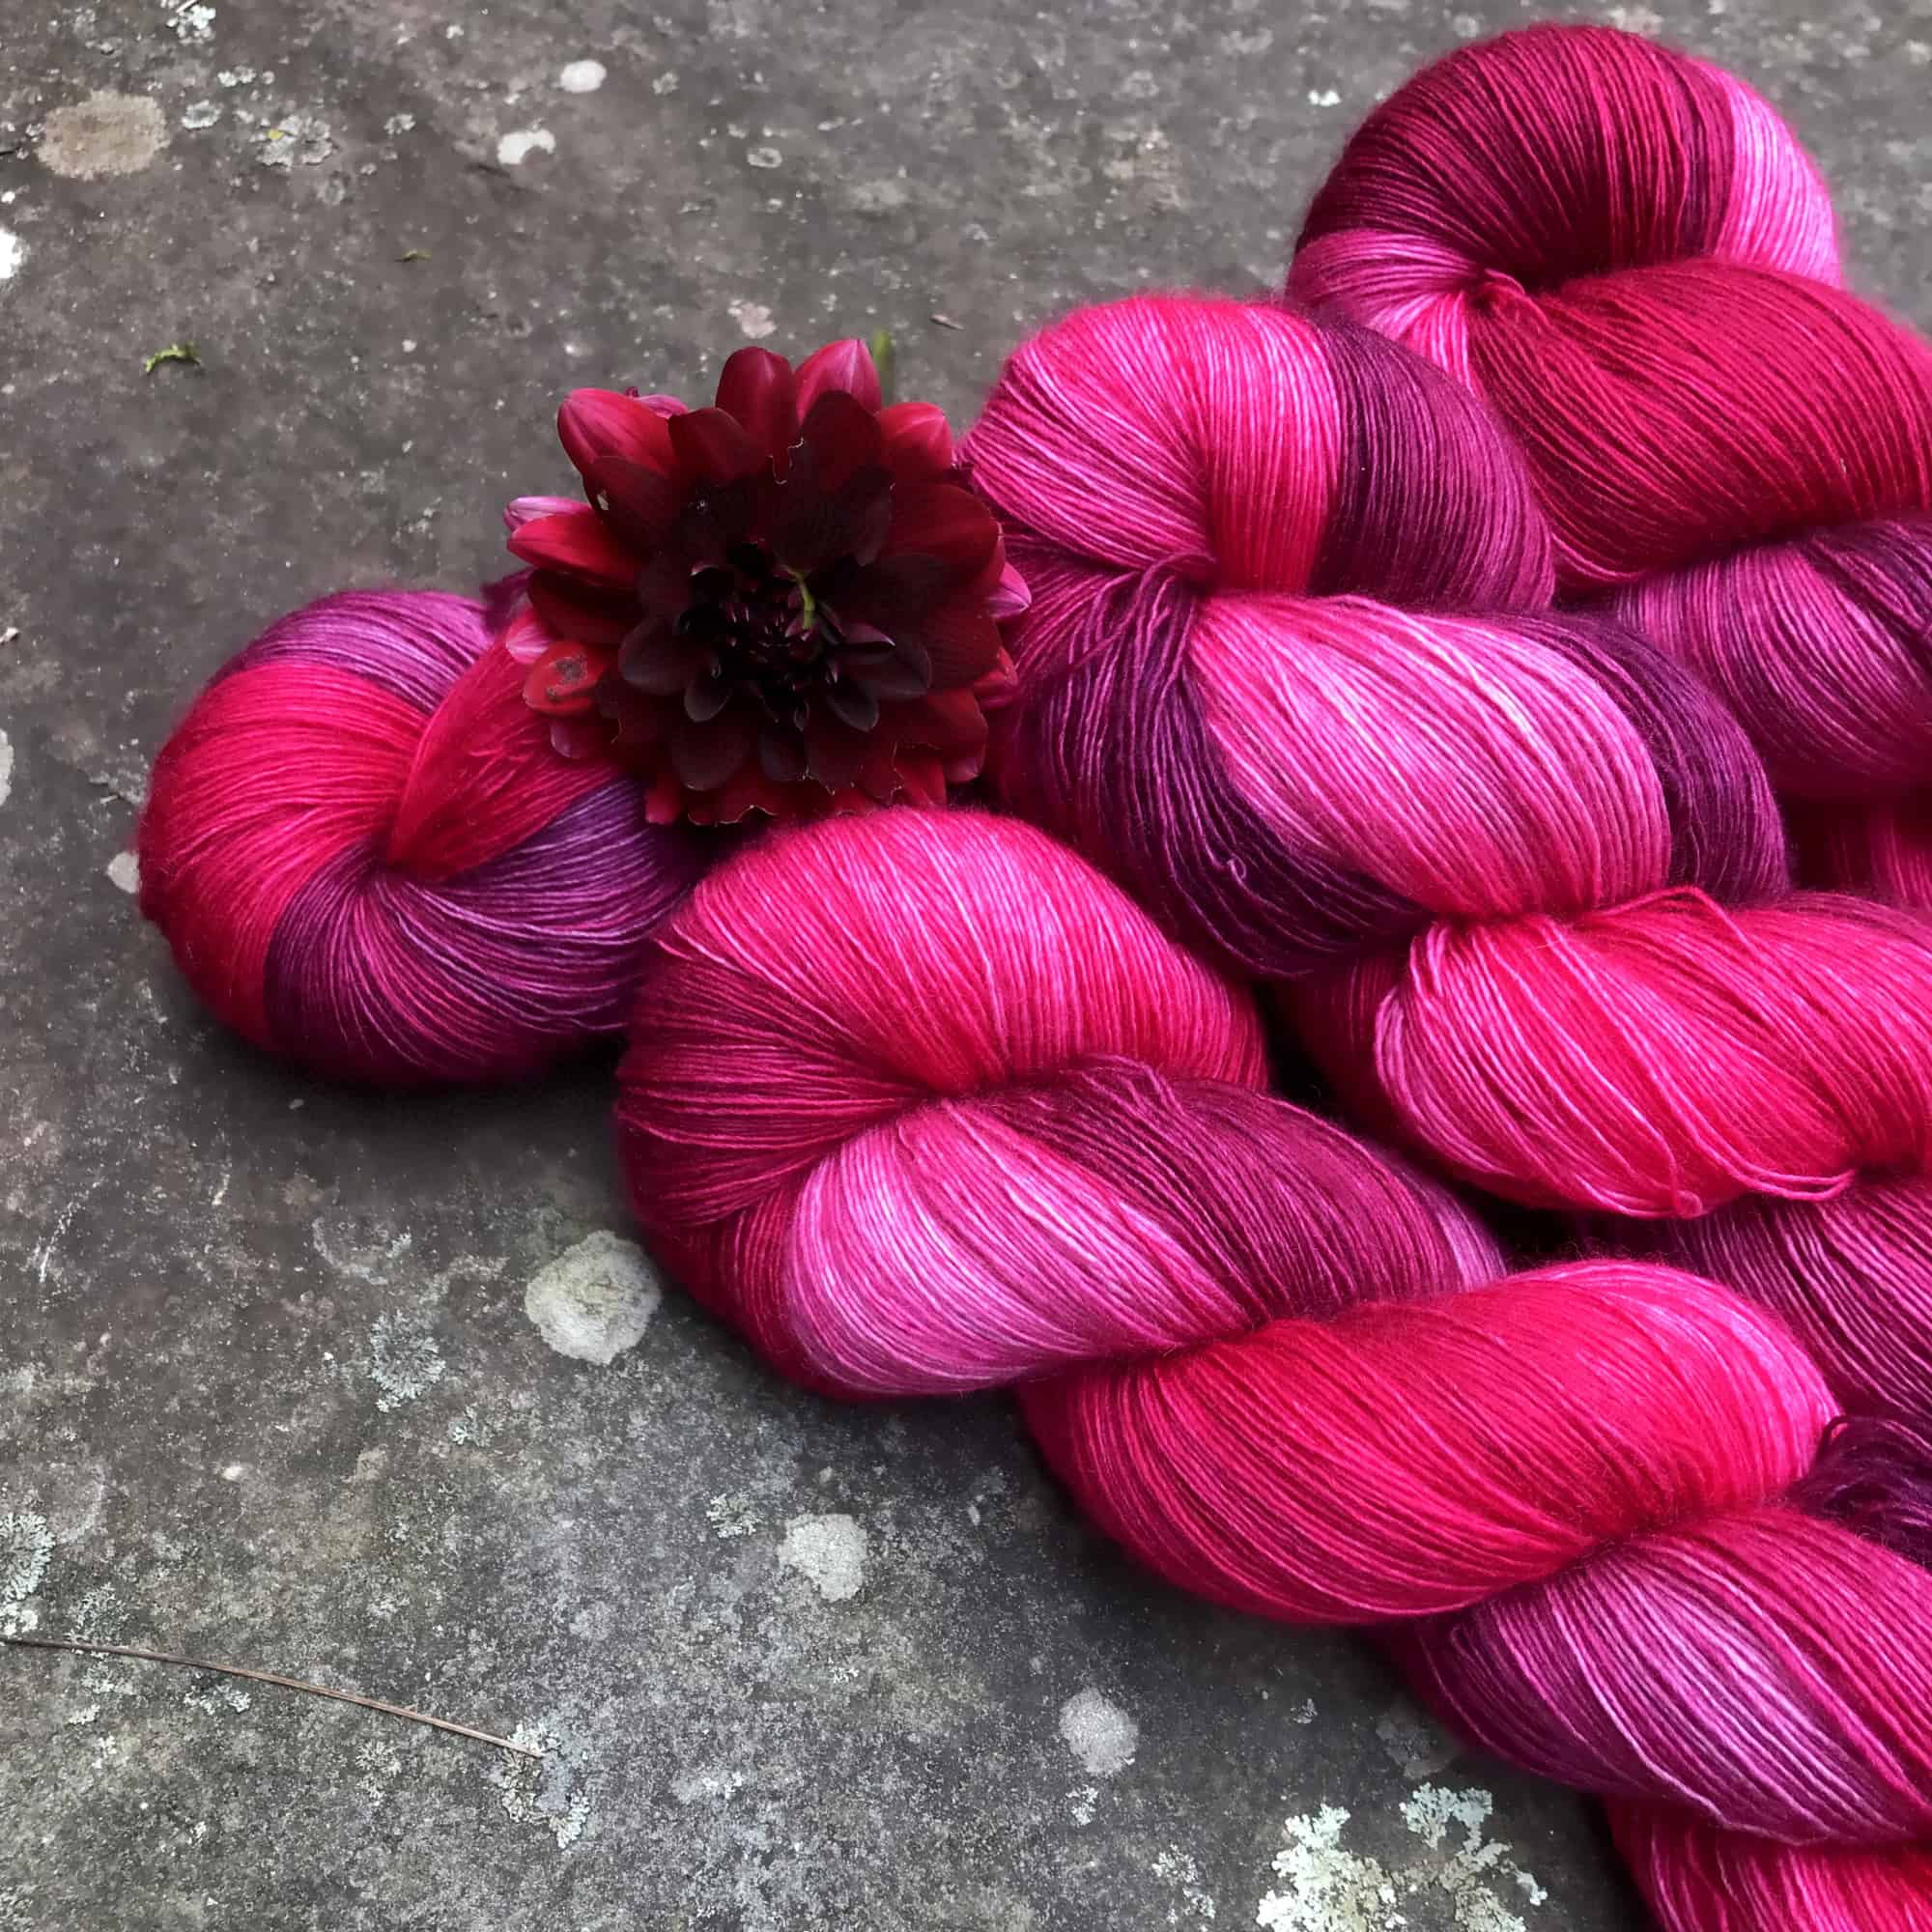 Hot pink and purple yarn with a pink flower.